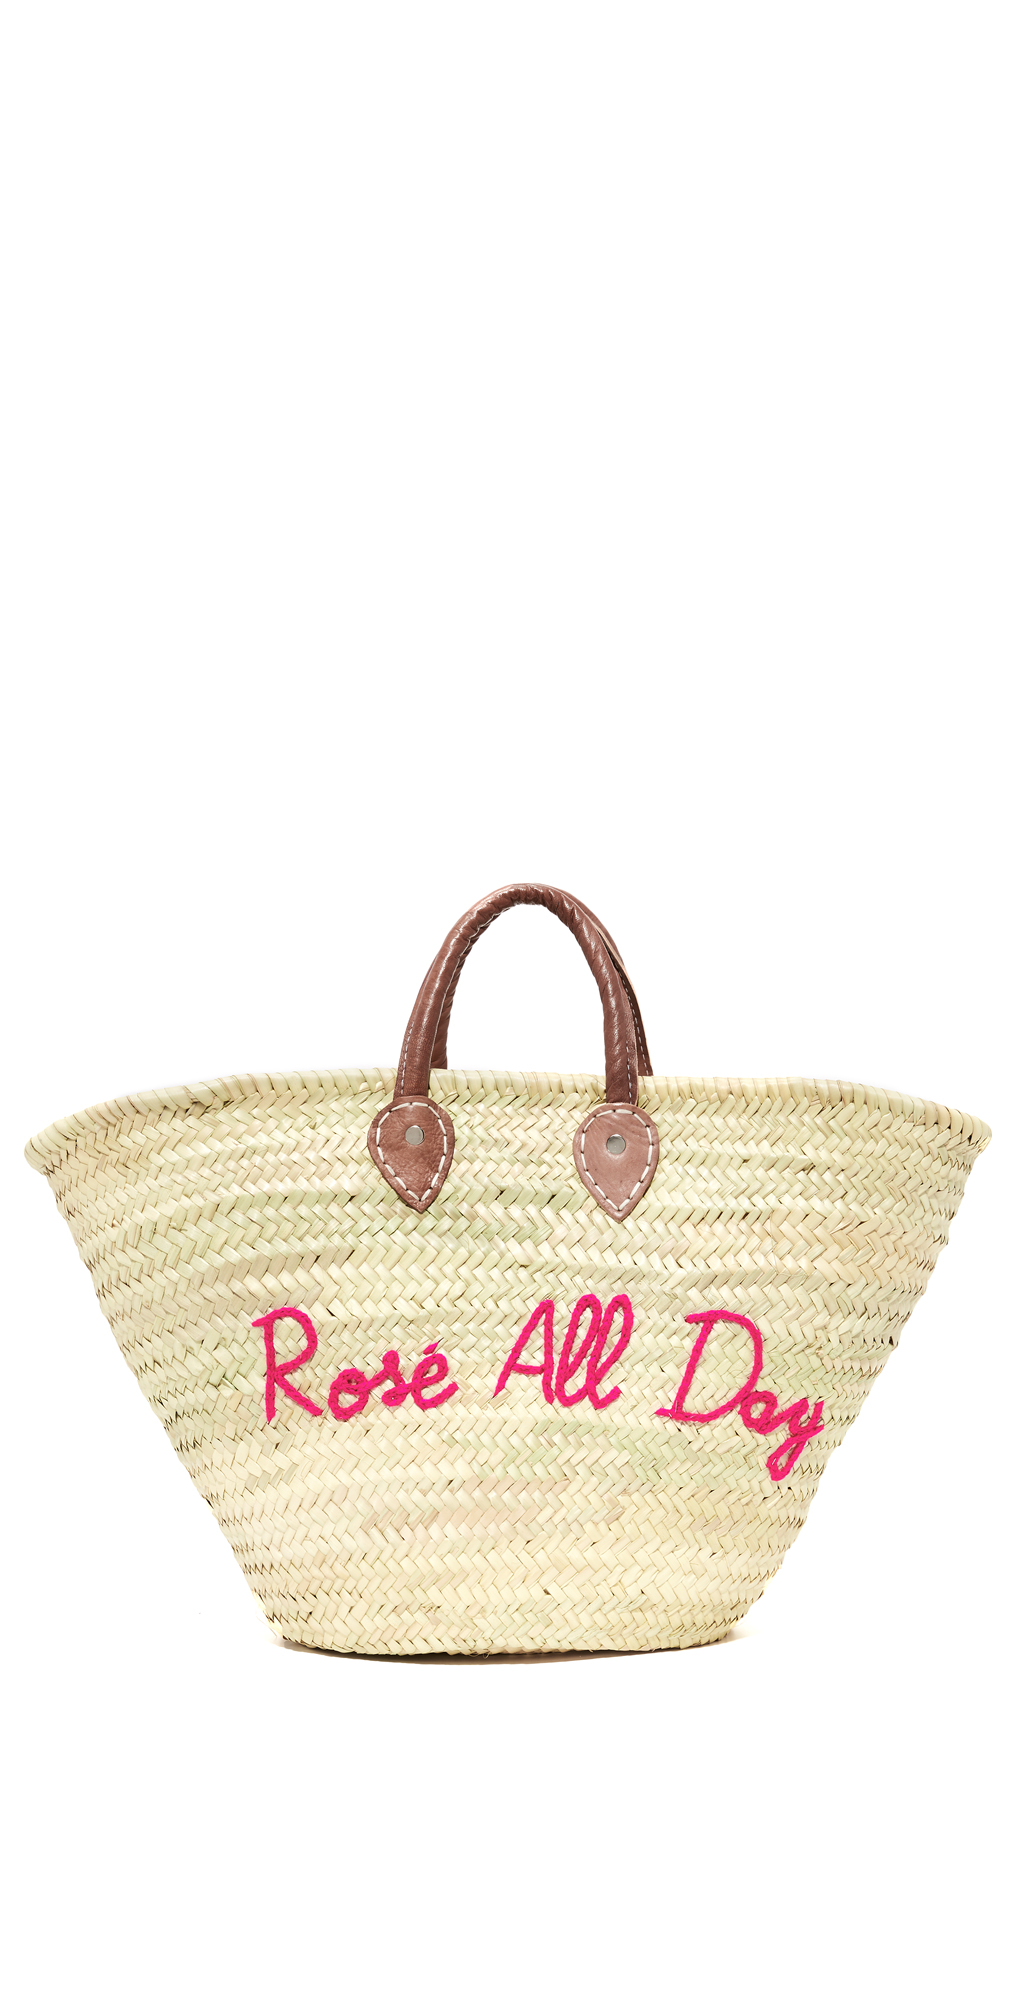 Rose All Day Tote Poolside Bags